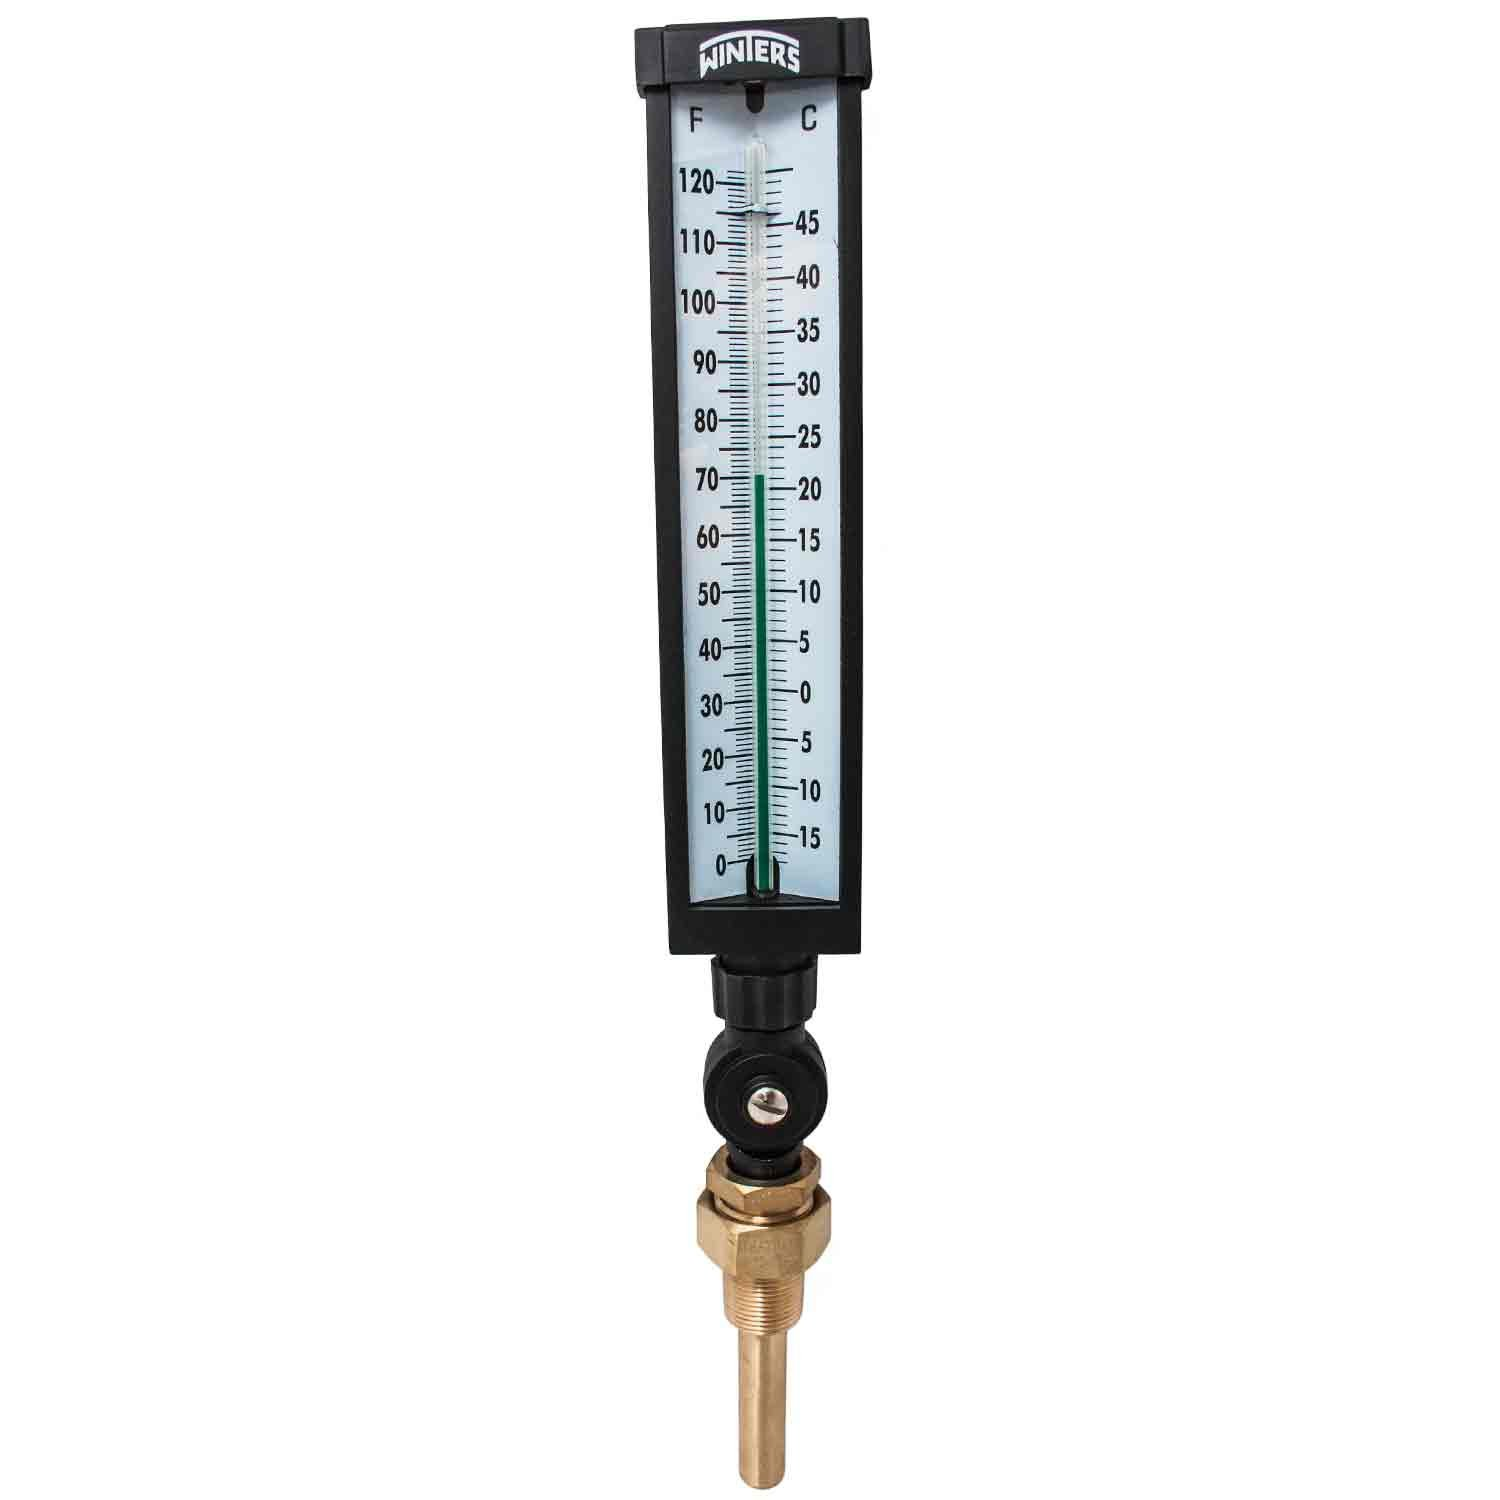 Winters TIM102ALF Lead free Well Thermometer, 3/4'' NPT, 0 to 120 degrees F, Â1% accuracy, Graphite Filled